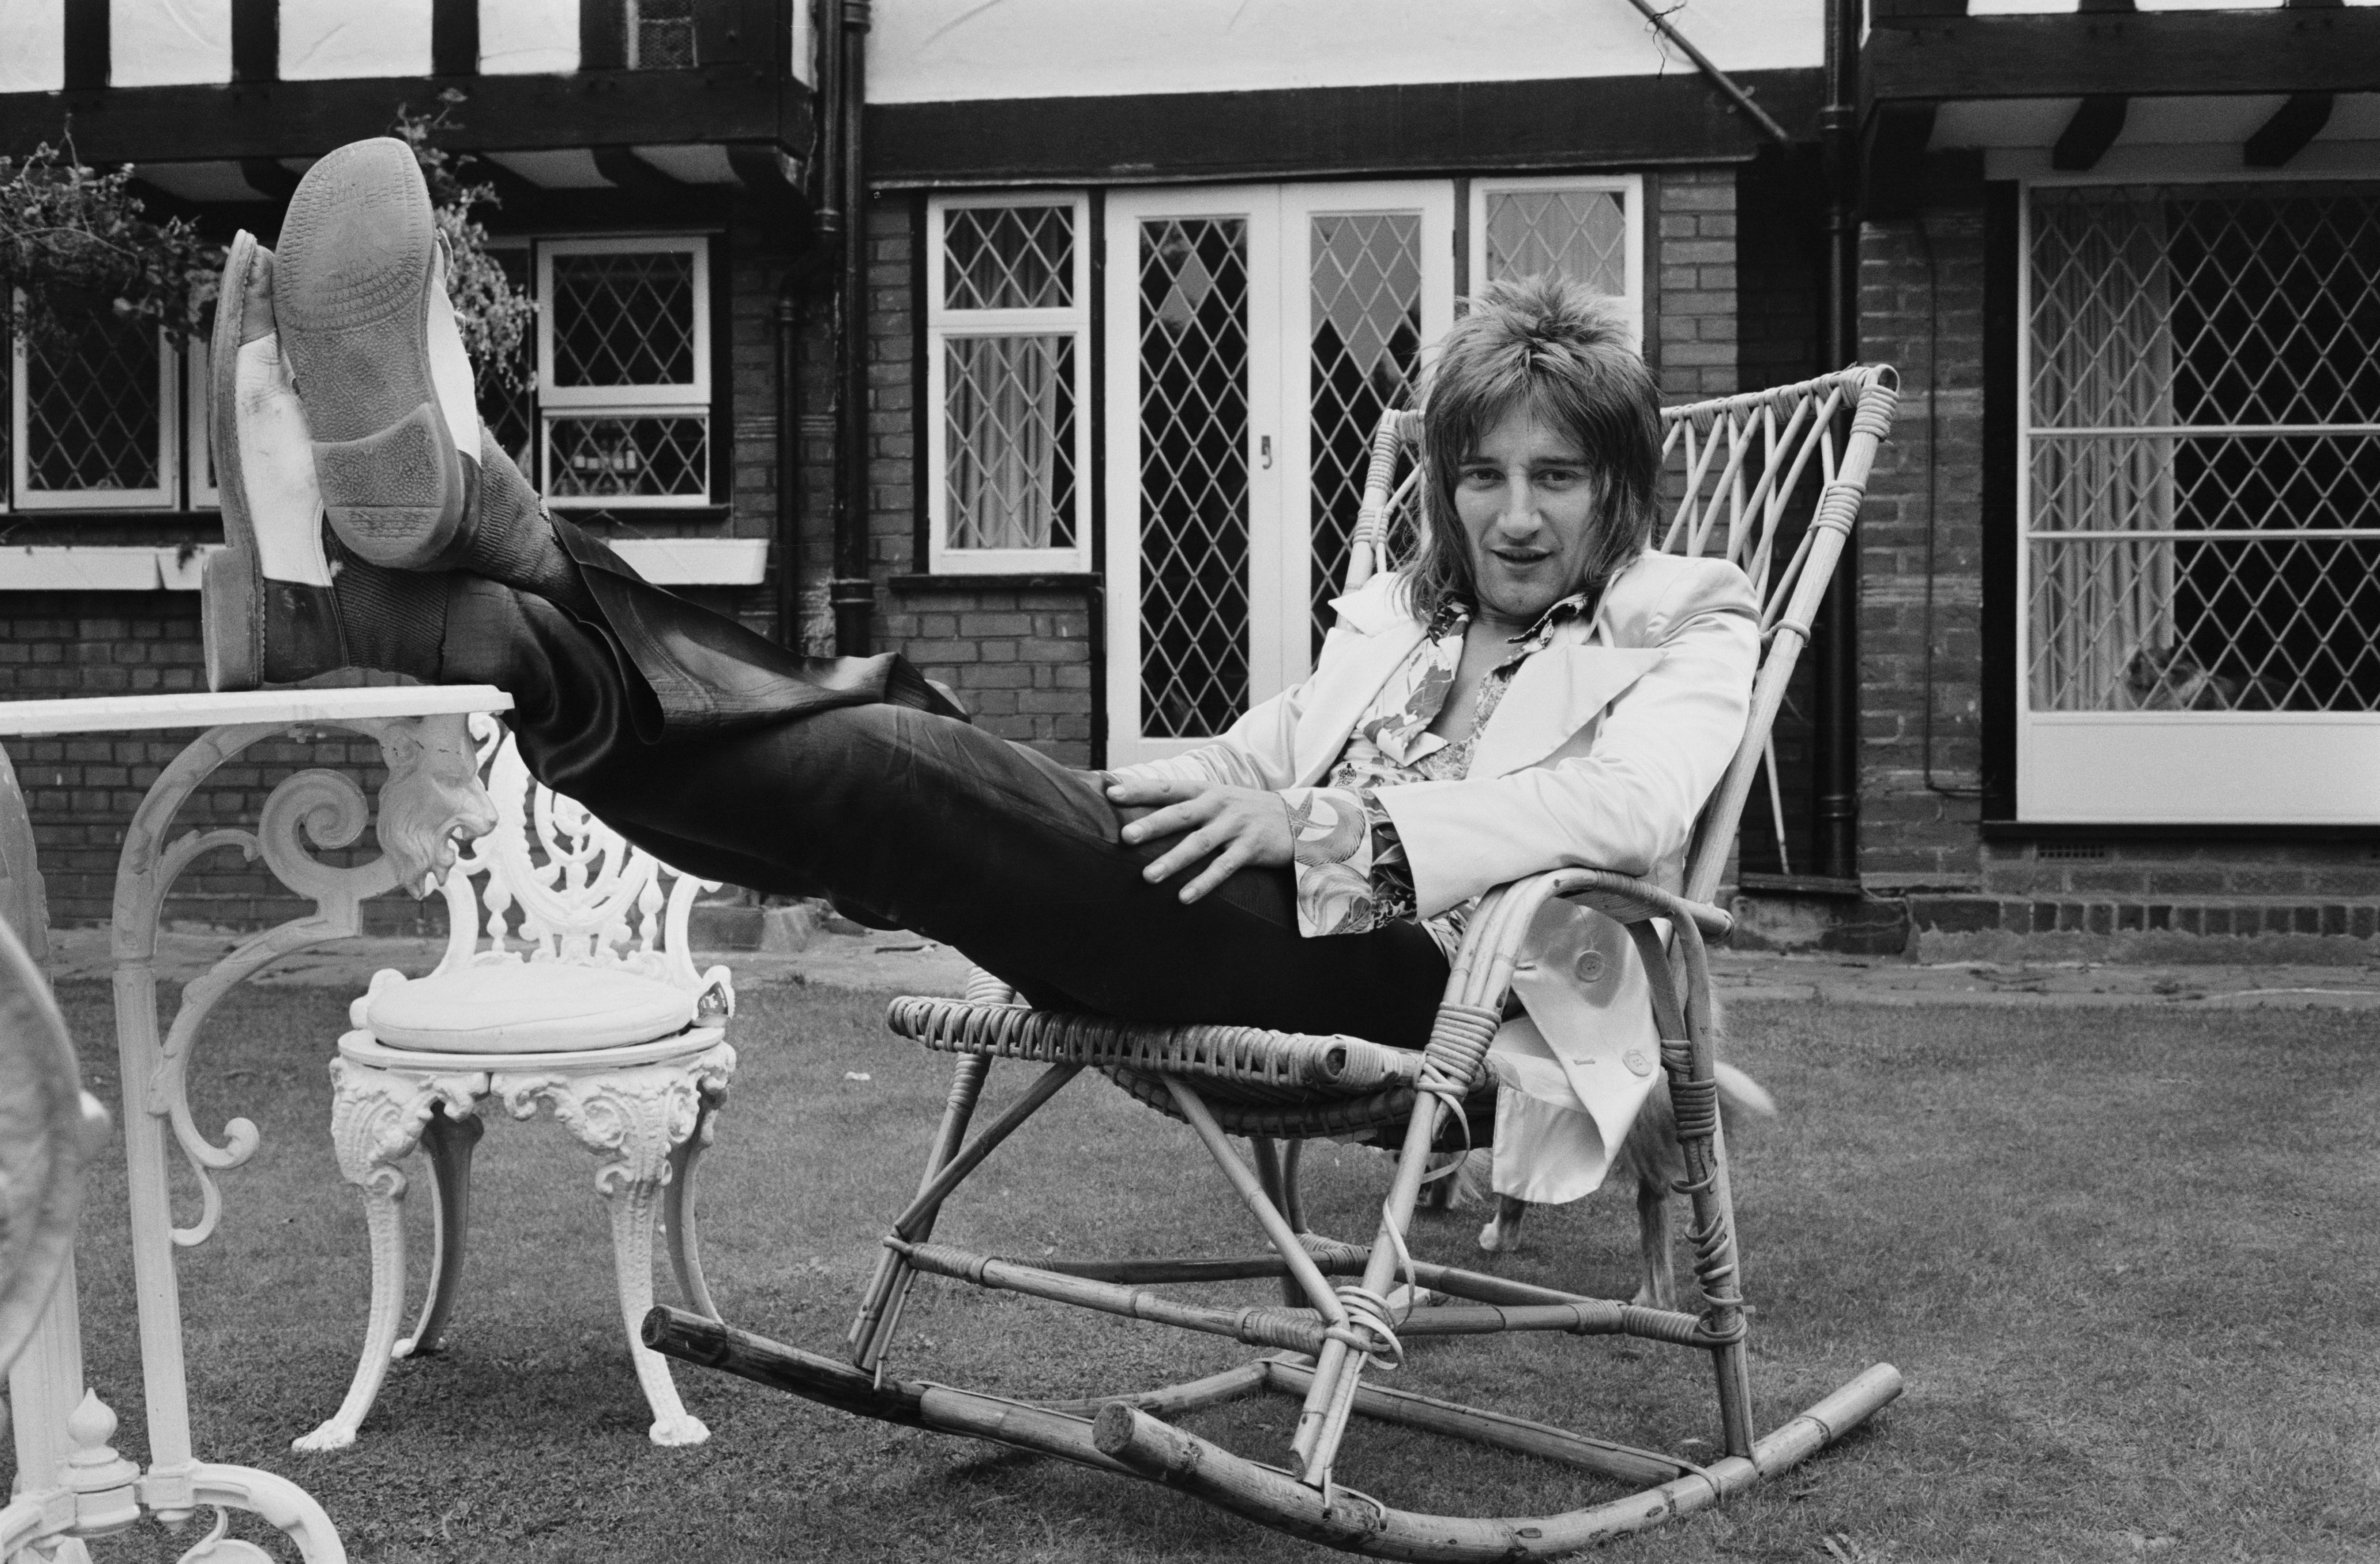 British rock singer Rod Stewart lounging in the garden, UK, 12th September 1971.  (Photo by Victor Blackman/Express/Hulton Archive/Getty Images)